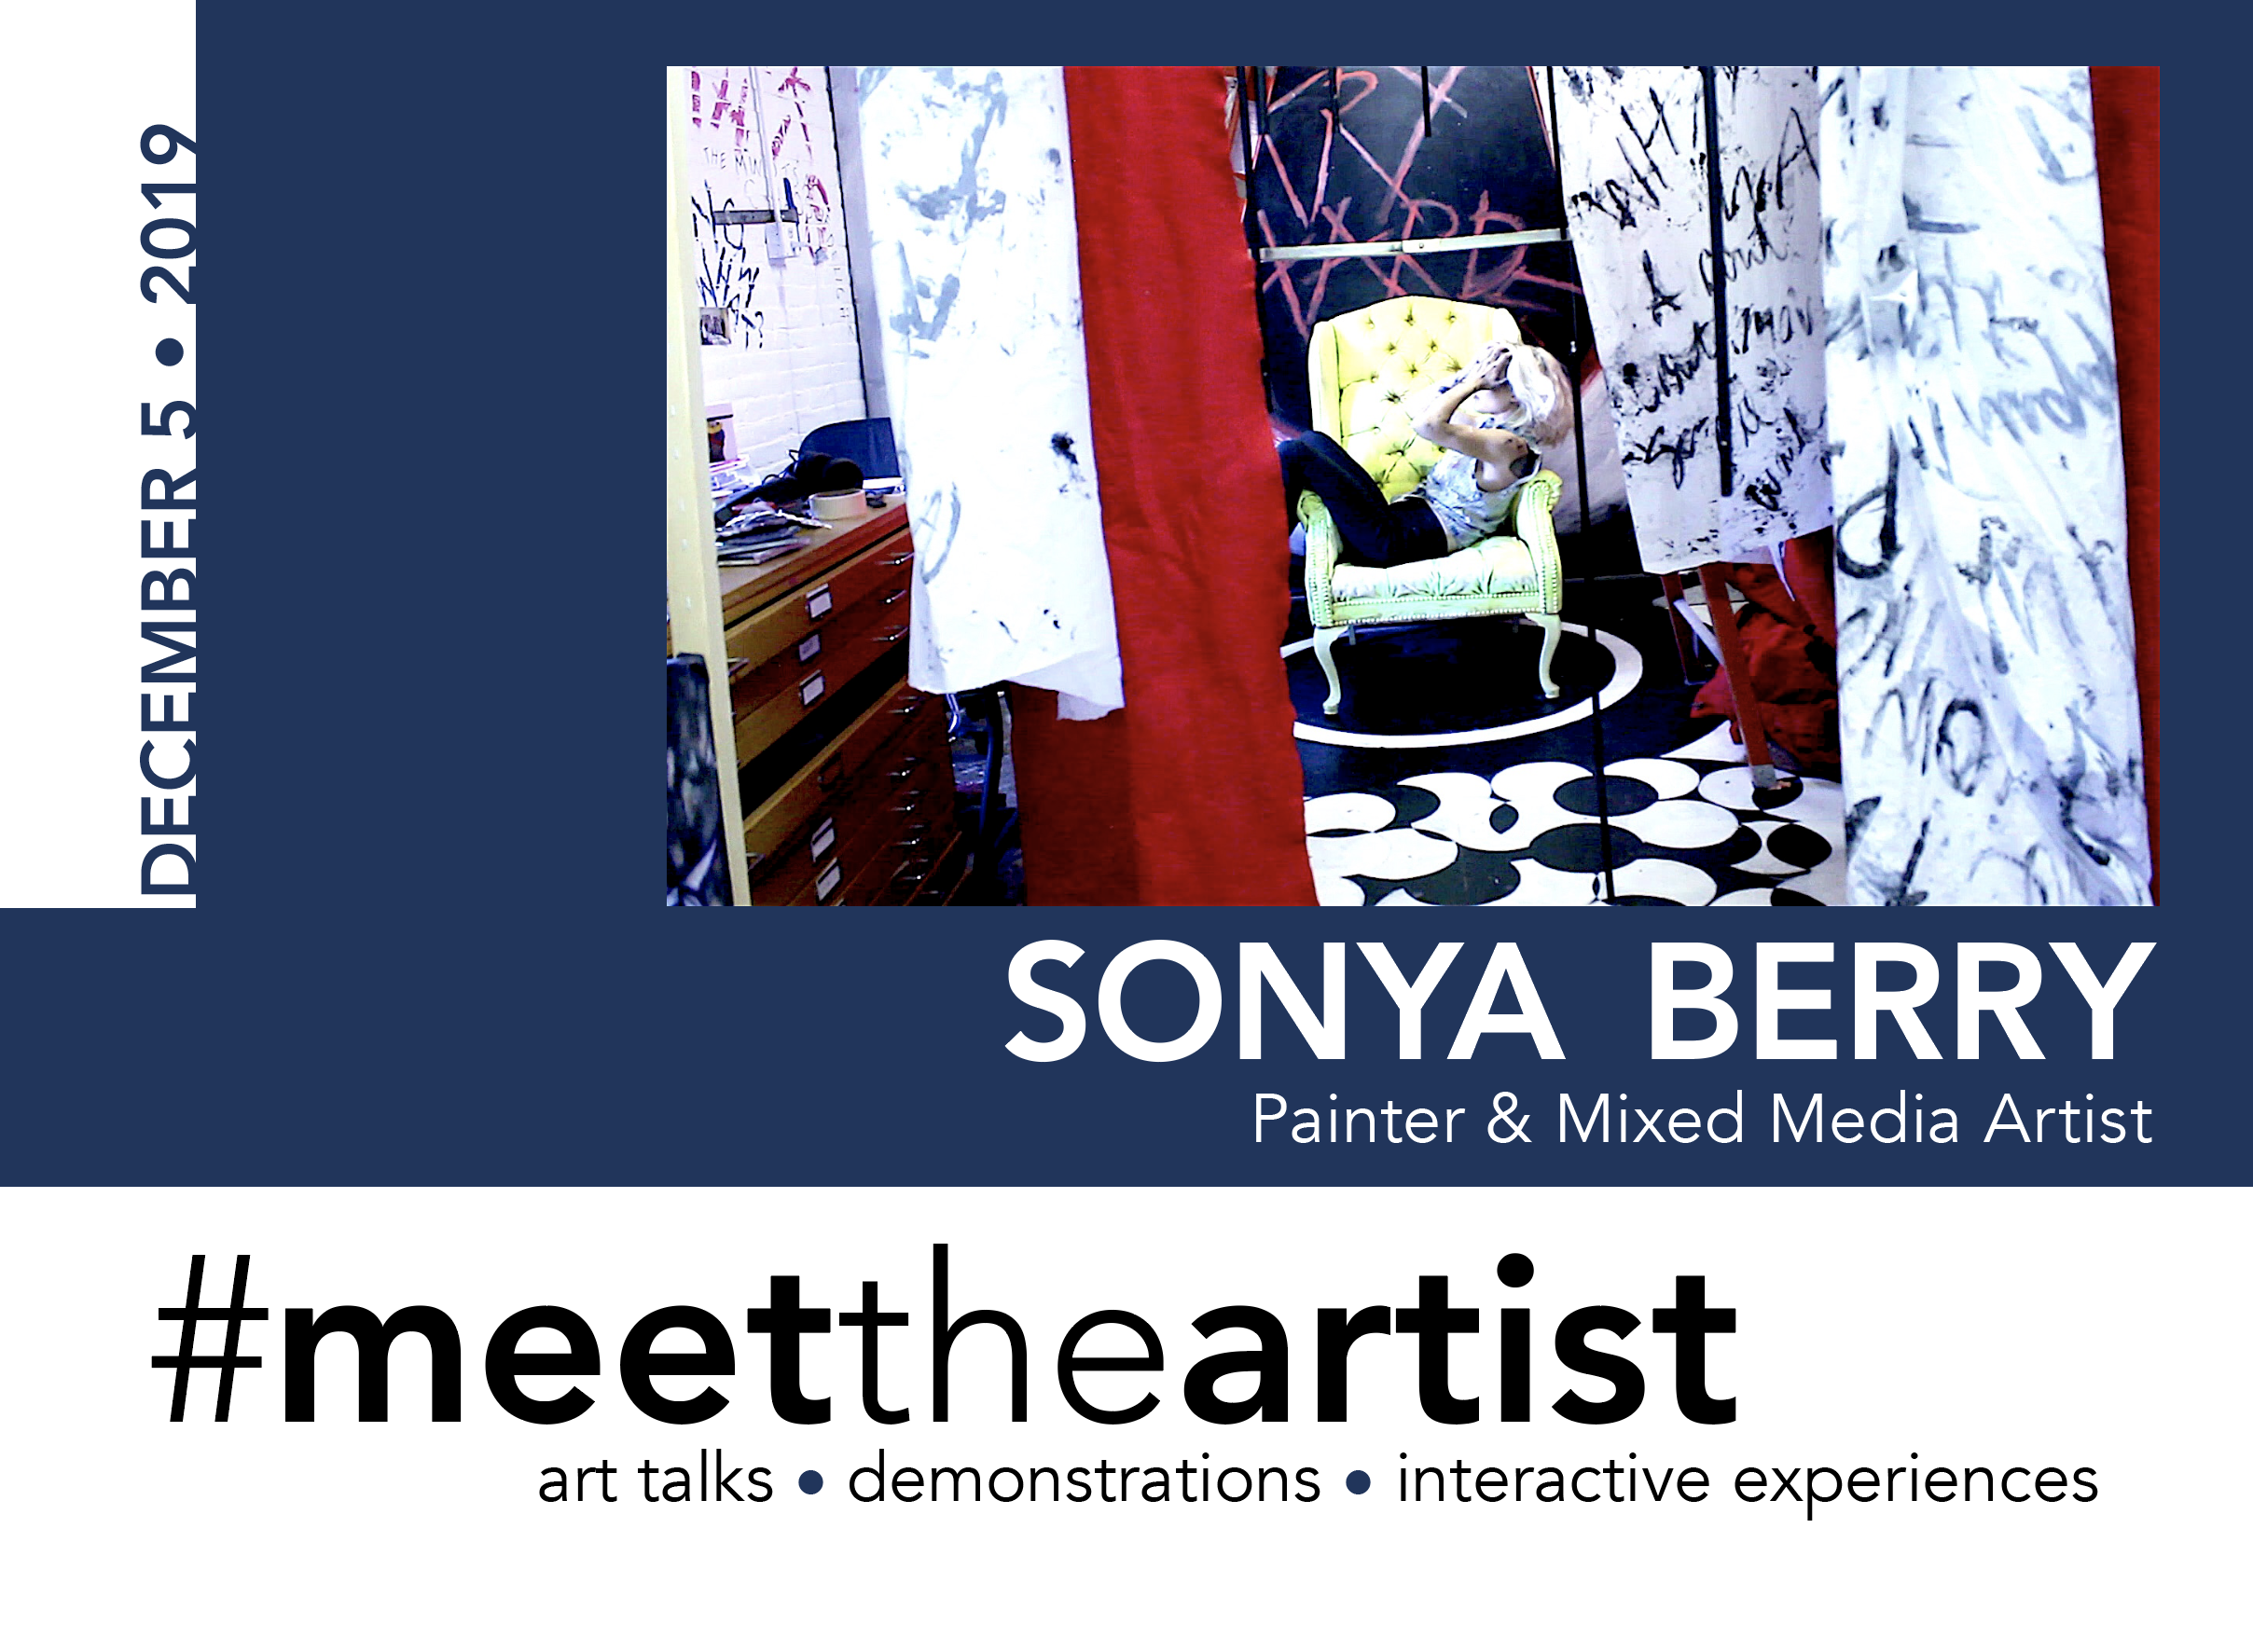 #meettheartist Sonya Berry